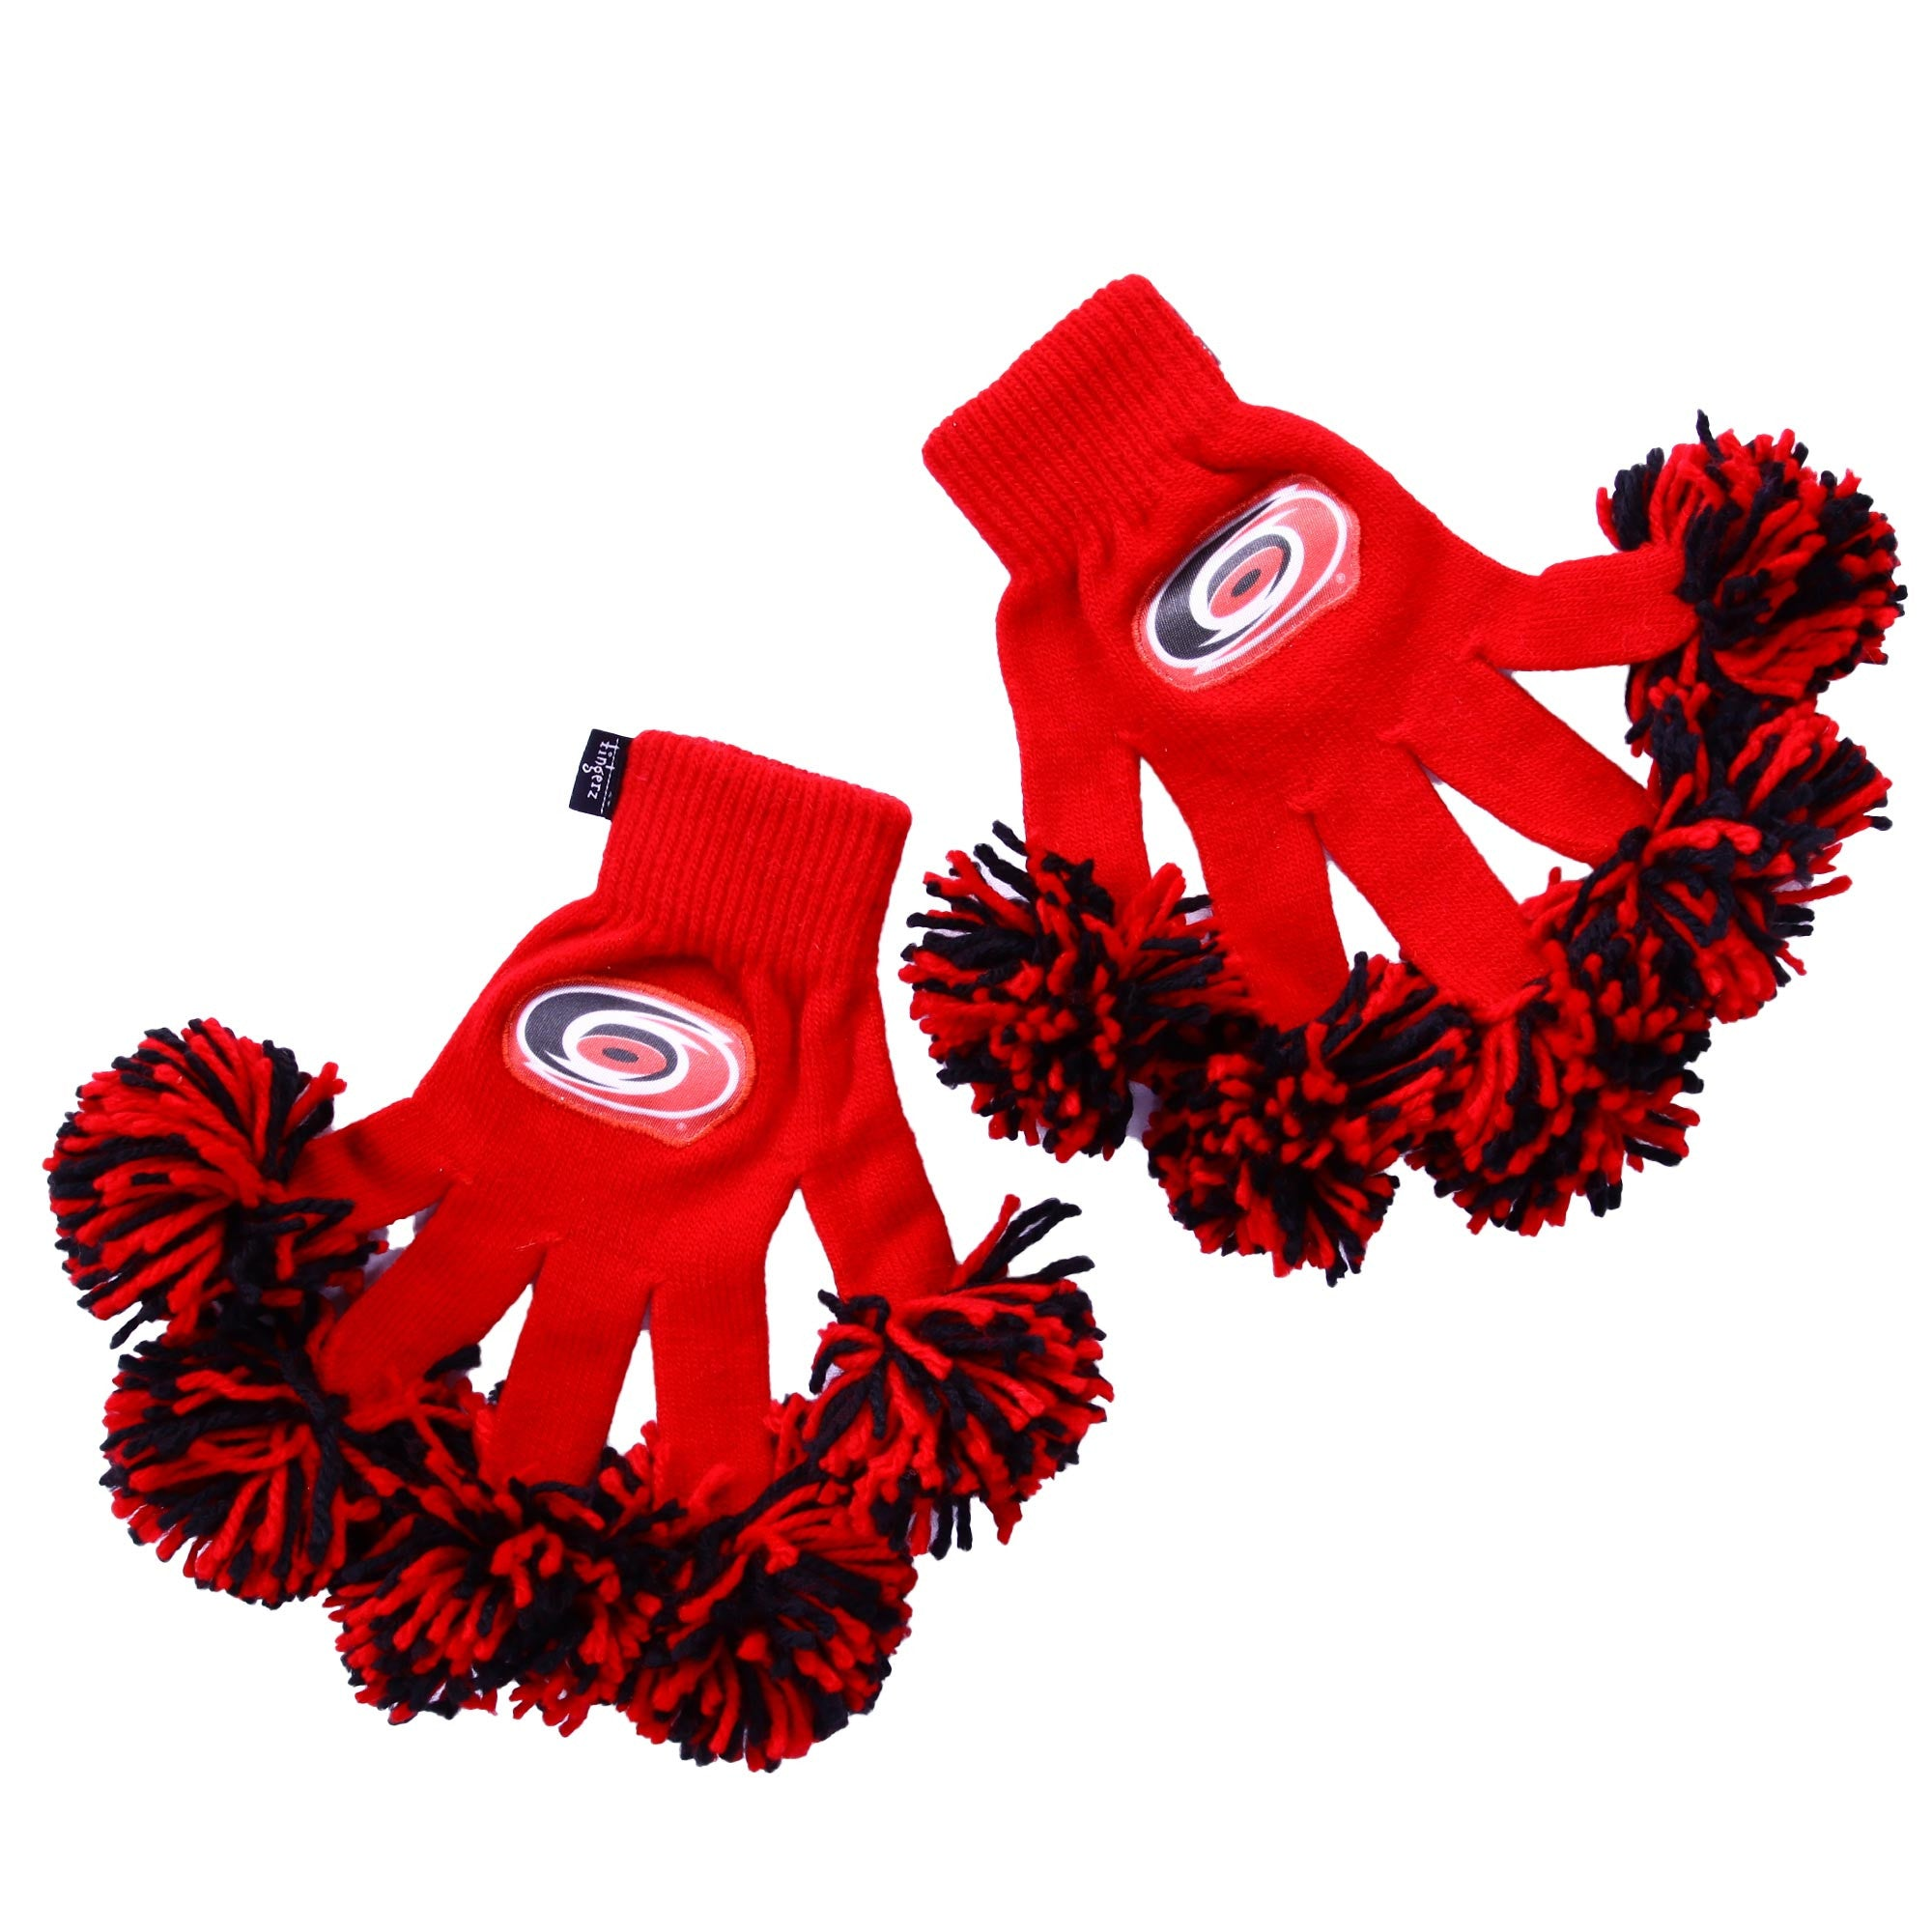 Carolina Hurricanes NHL Spirit Fingerz Cheerleading Pom-Pom Gloves